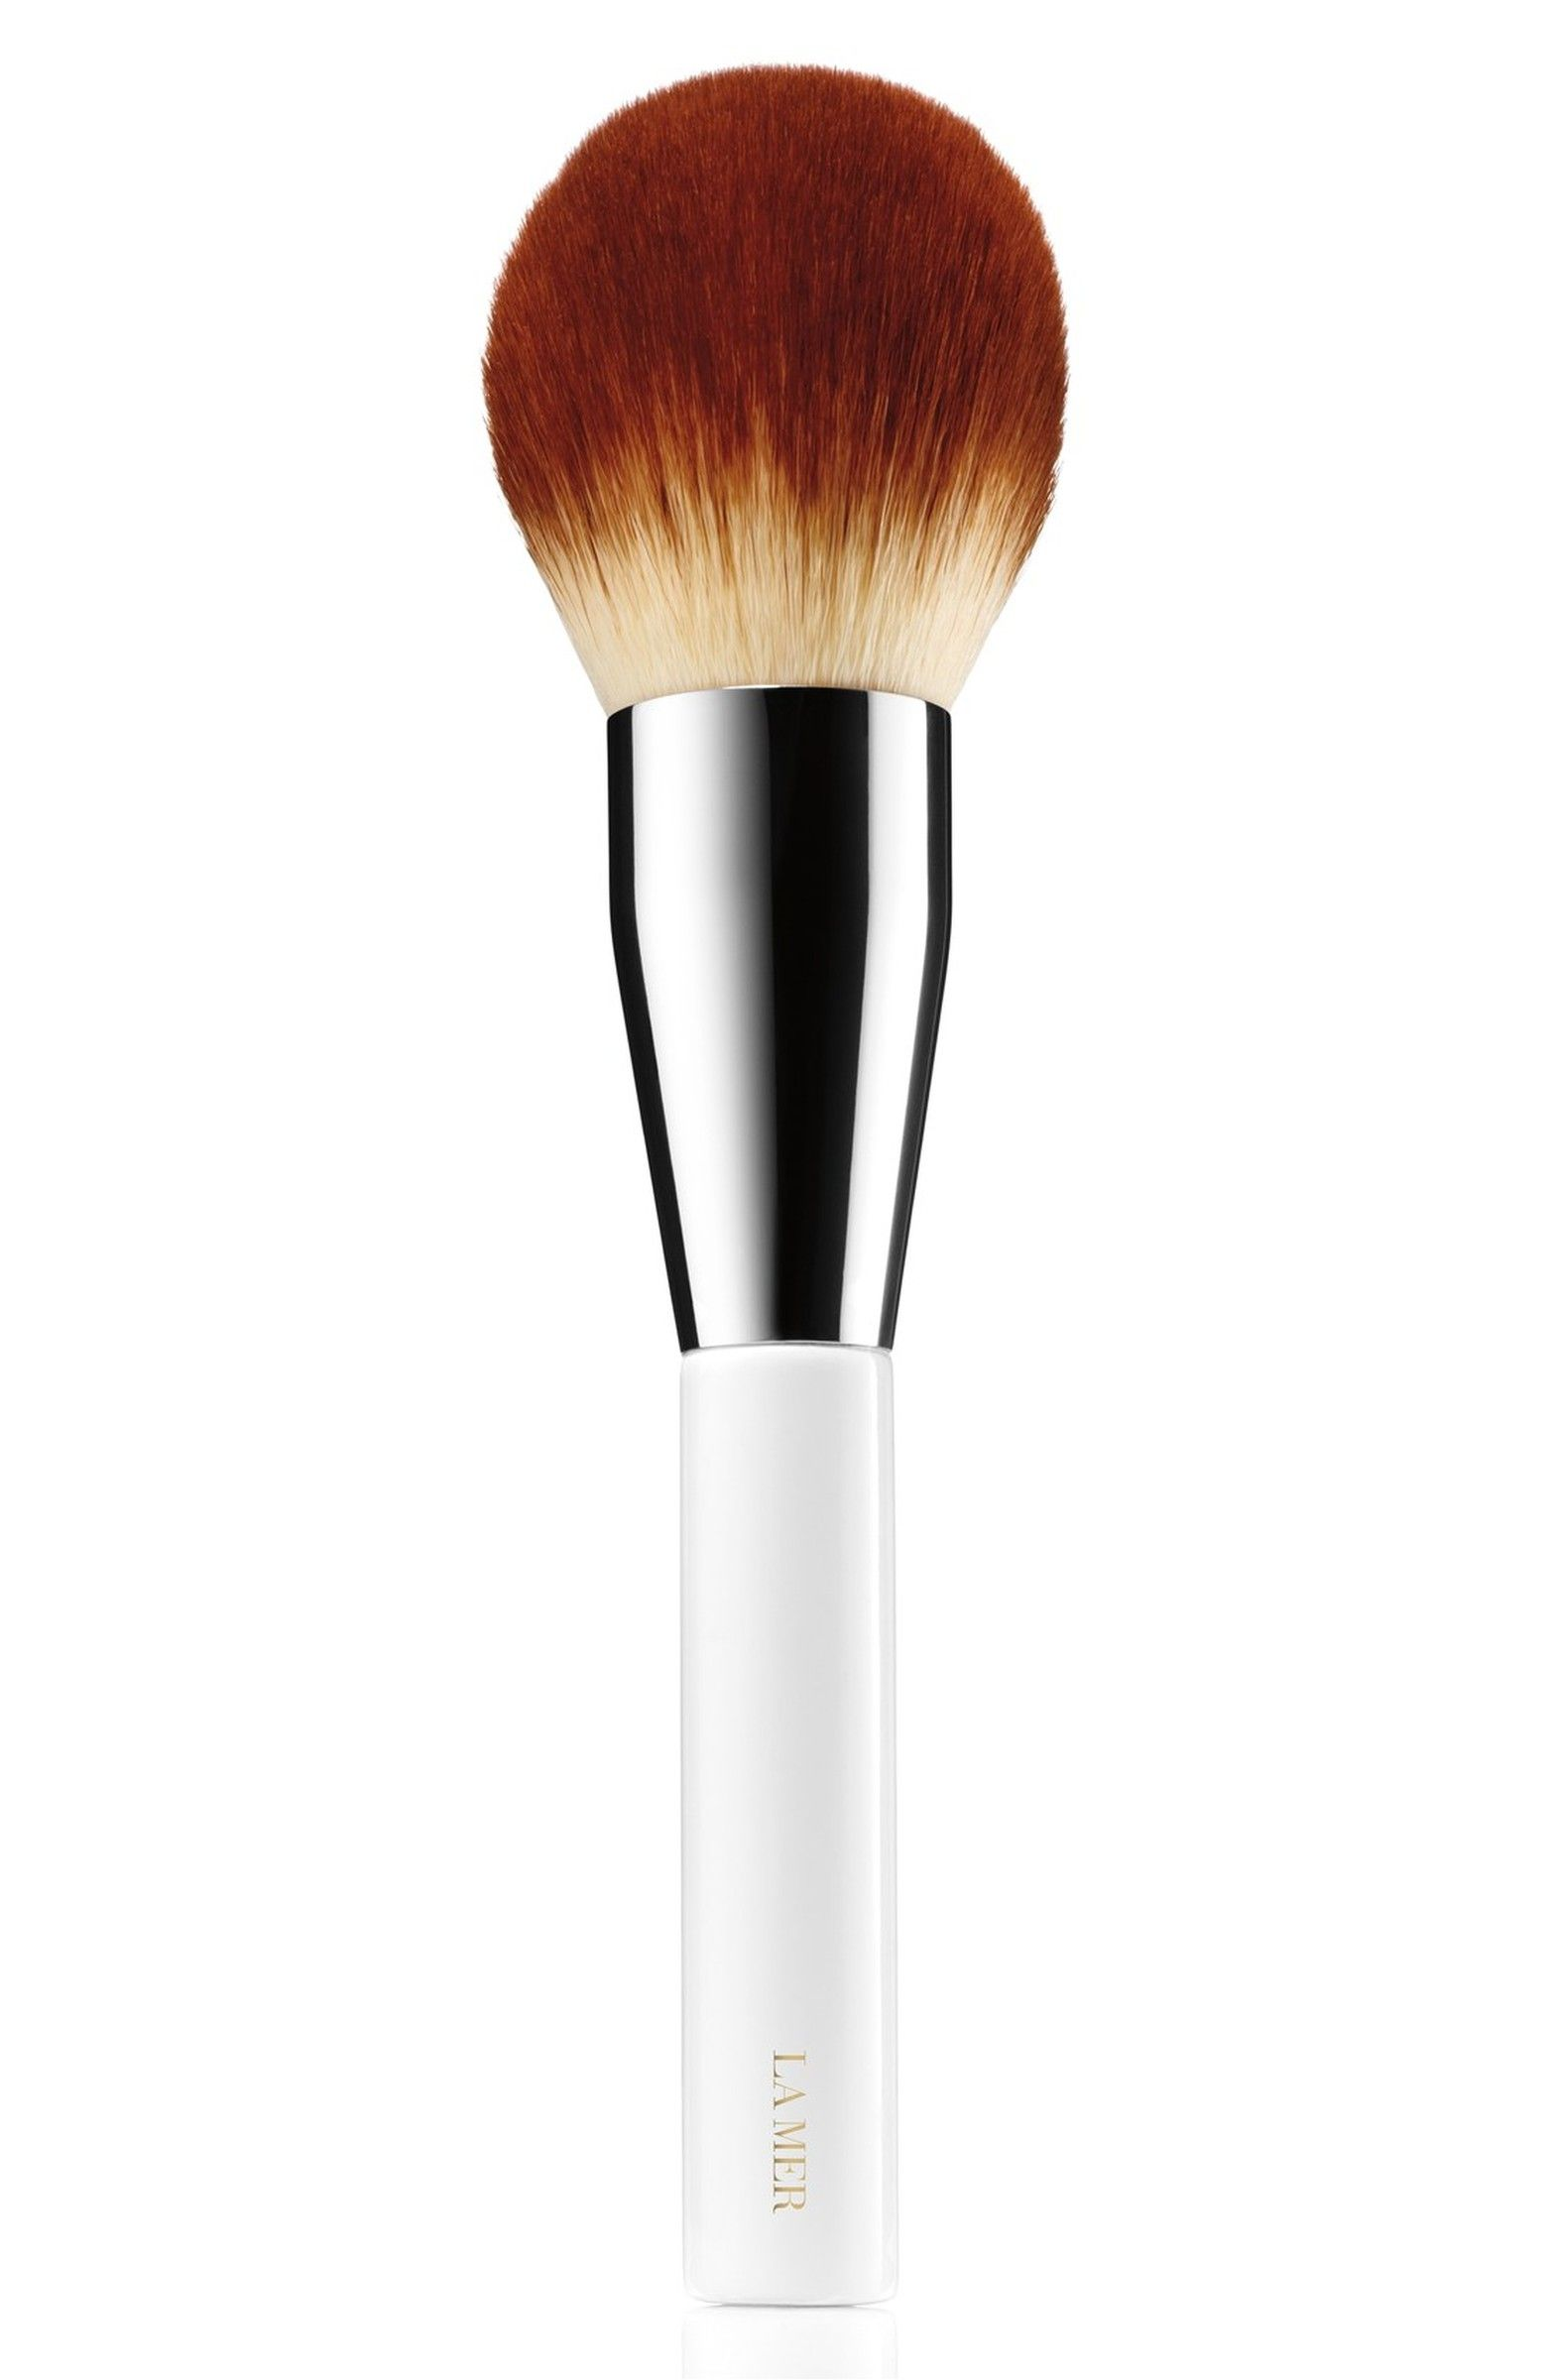 La Mer The Powder Brush Powder brush, Brush, Beauty tool